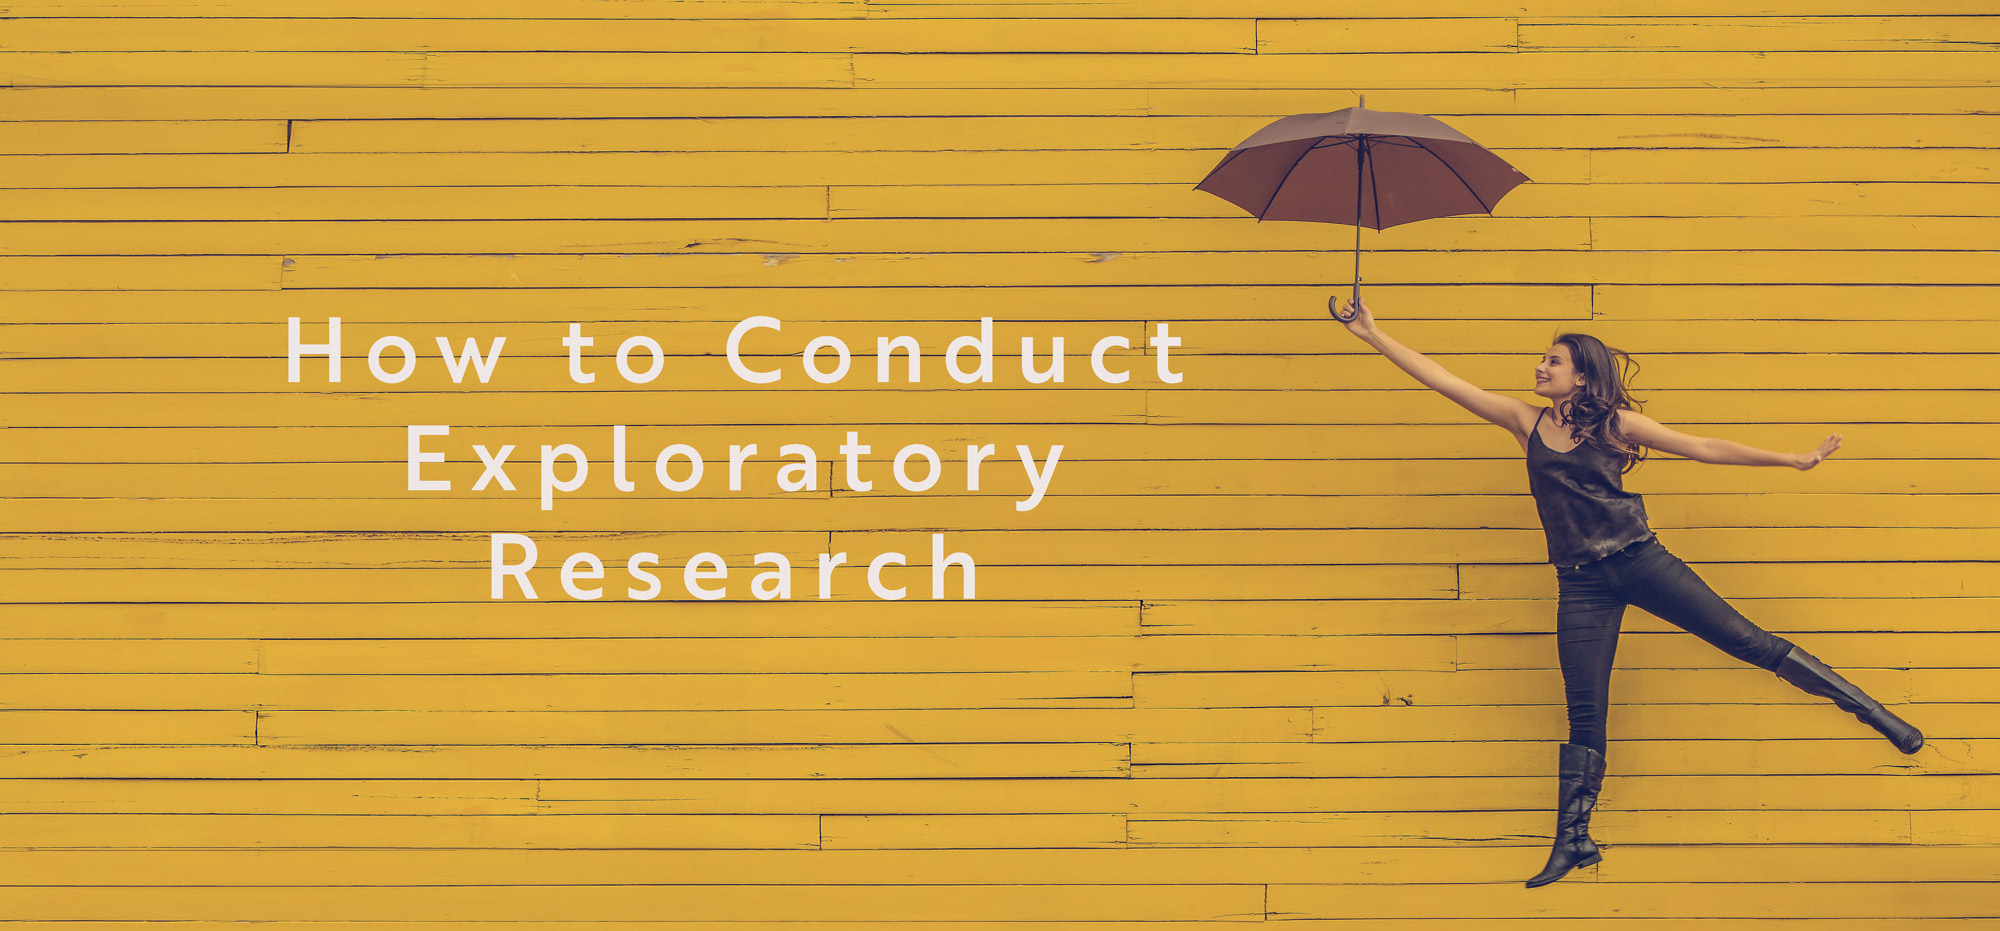 How to Conduct Exploratory Research